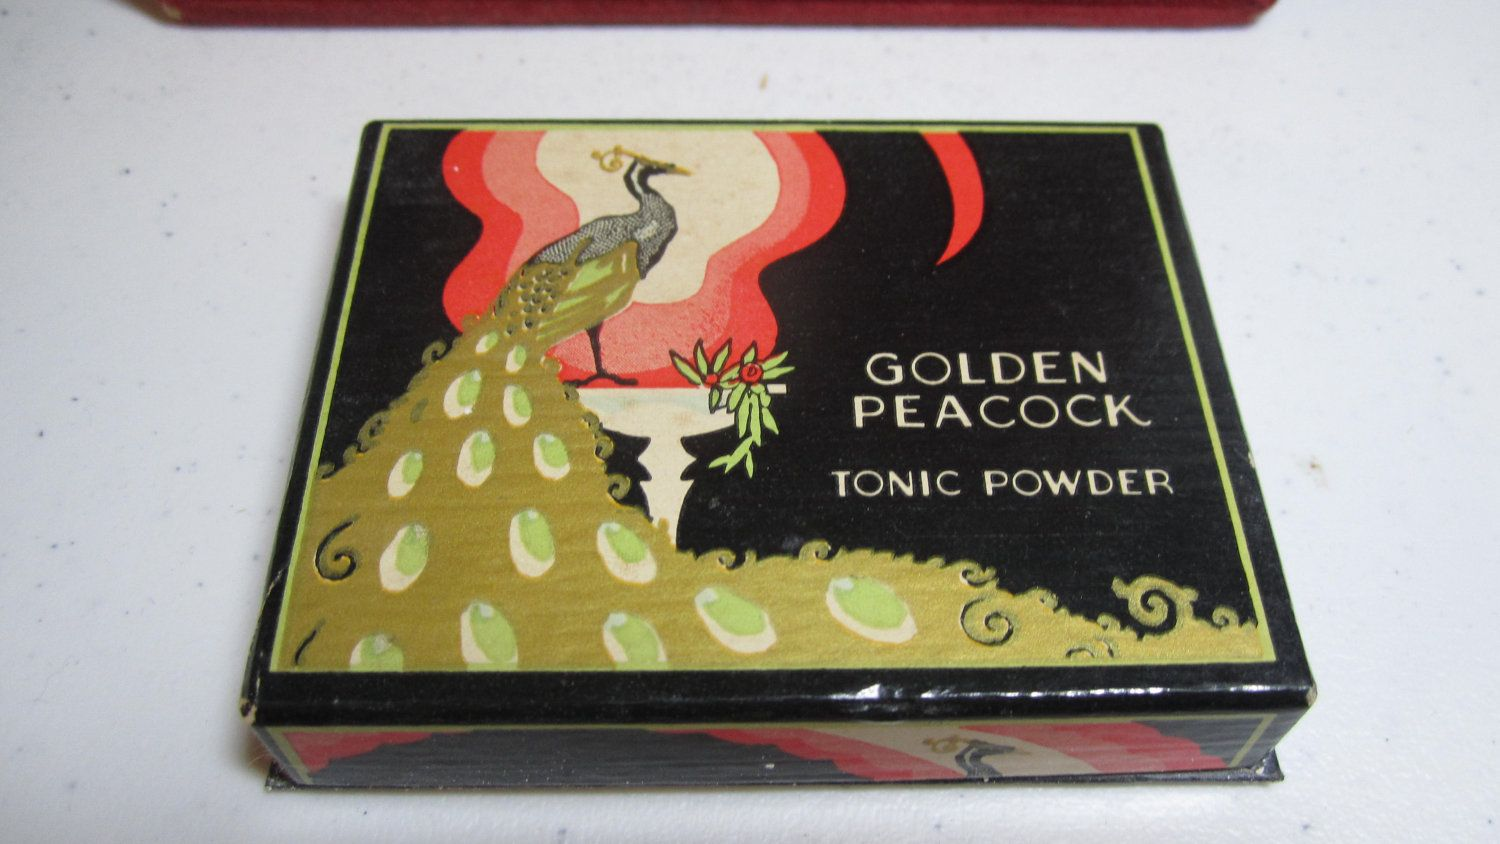 1920 S 30 S Art Deco Golden Peacock Tonic Powder Box Colorful